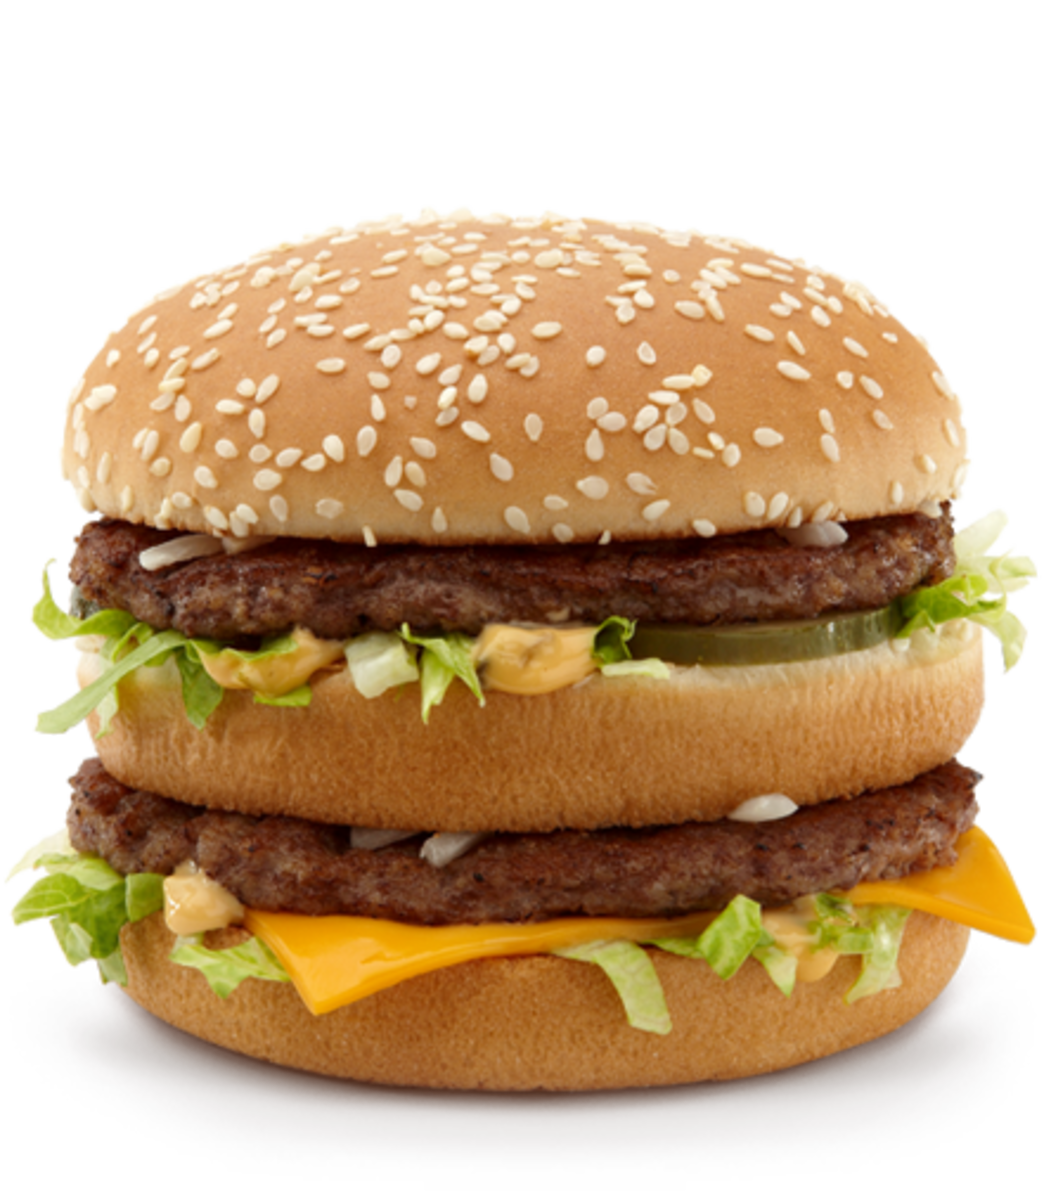 Eat a Big Mac without the bun and you will be low on carbs